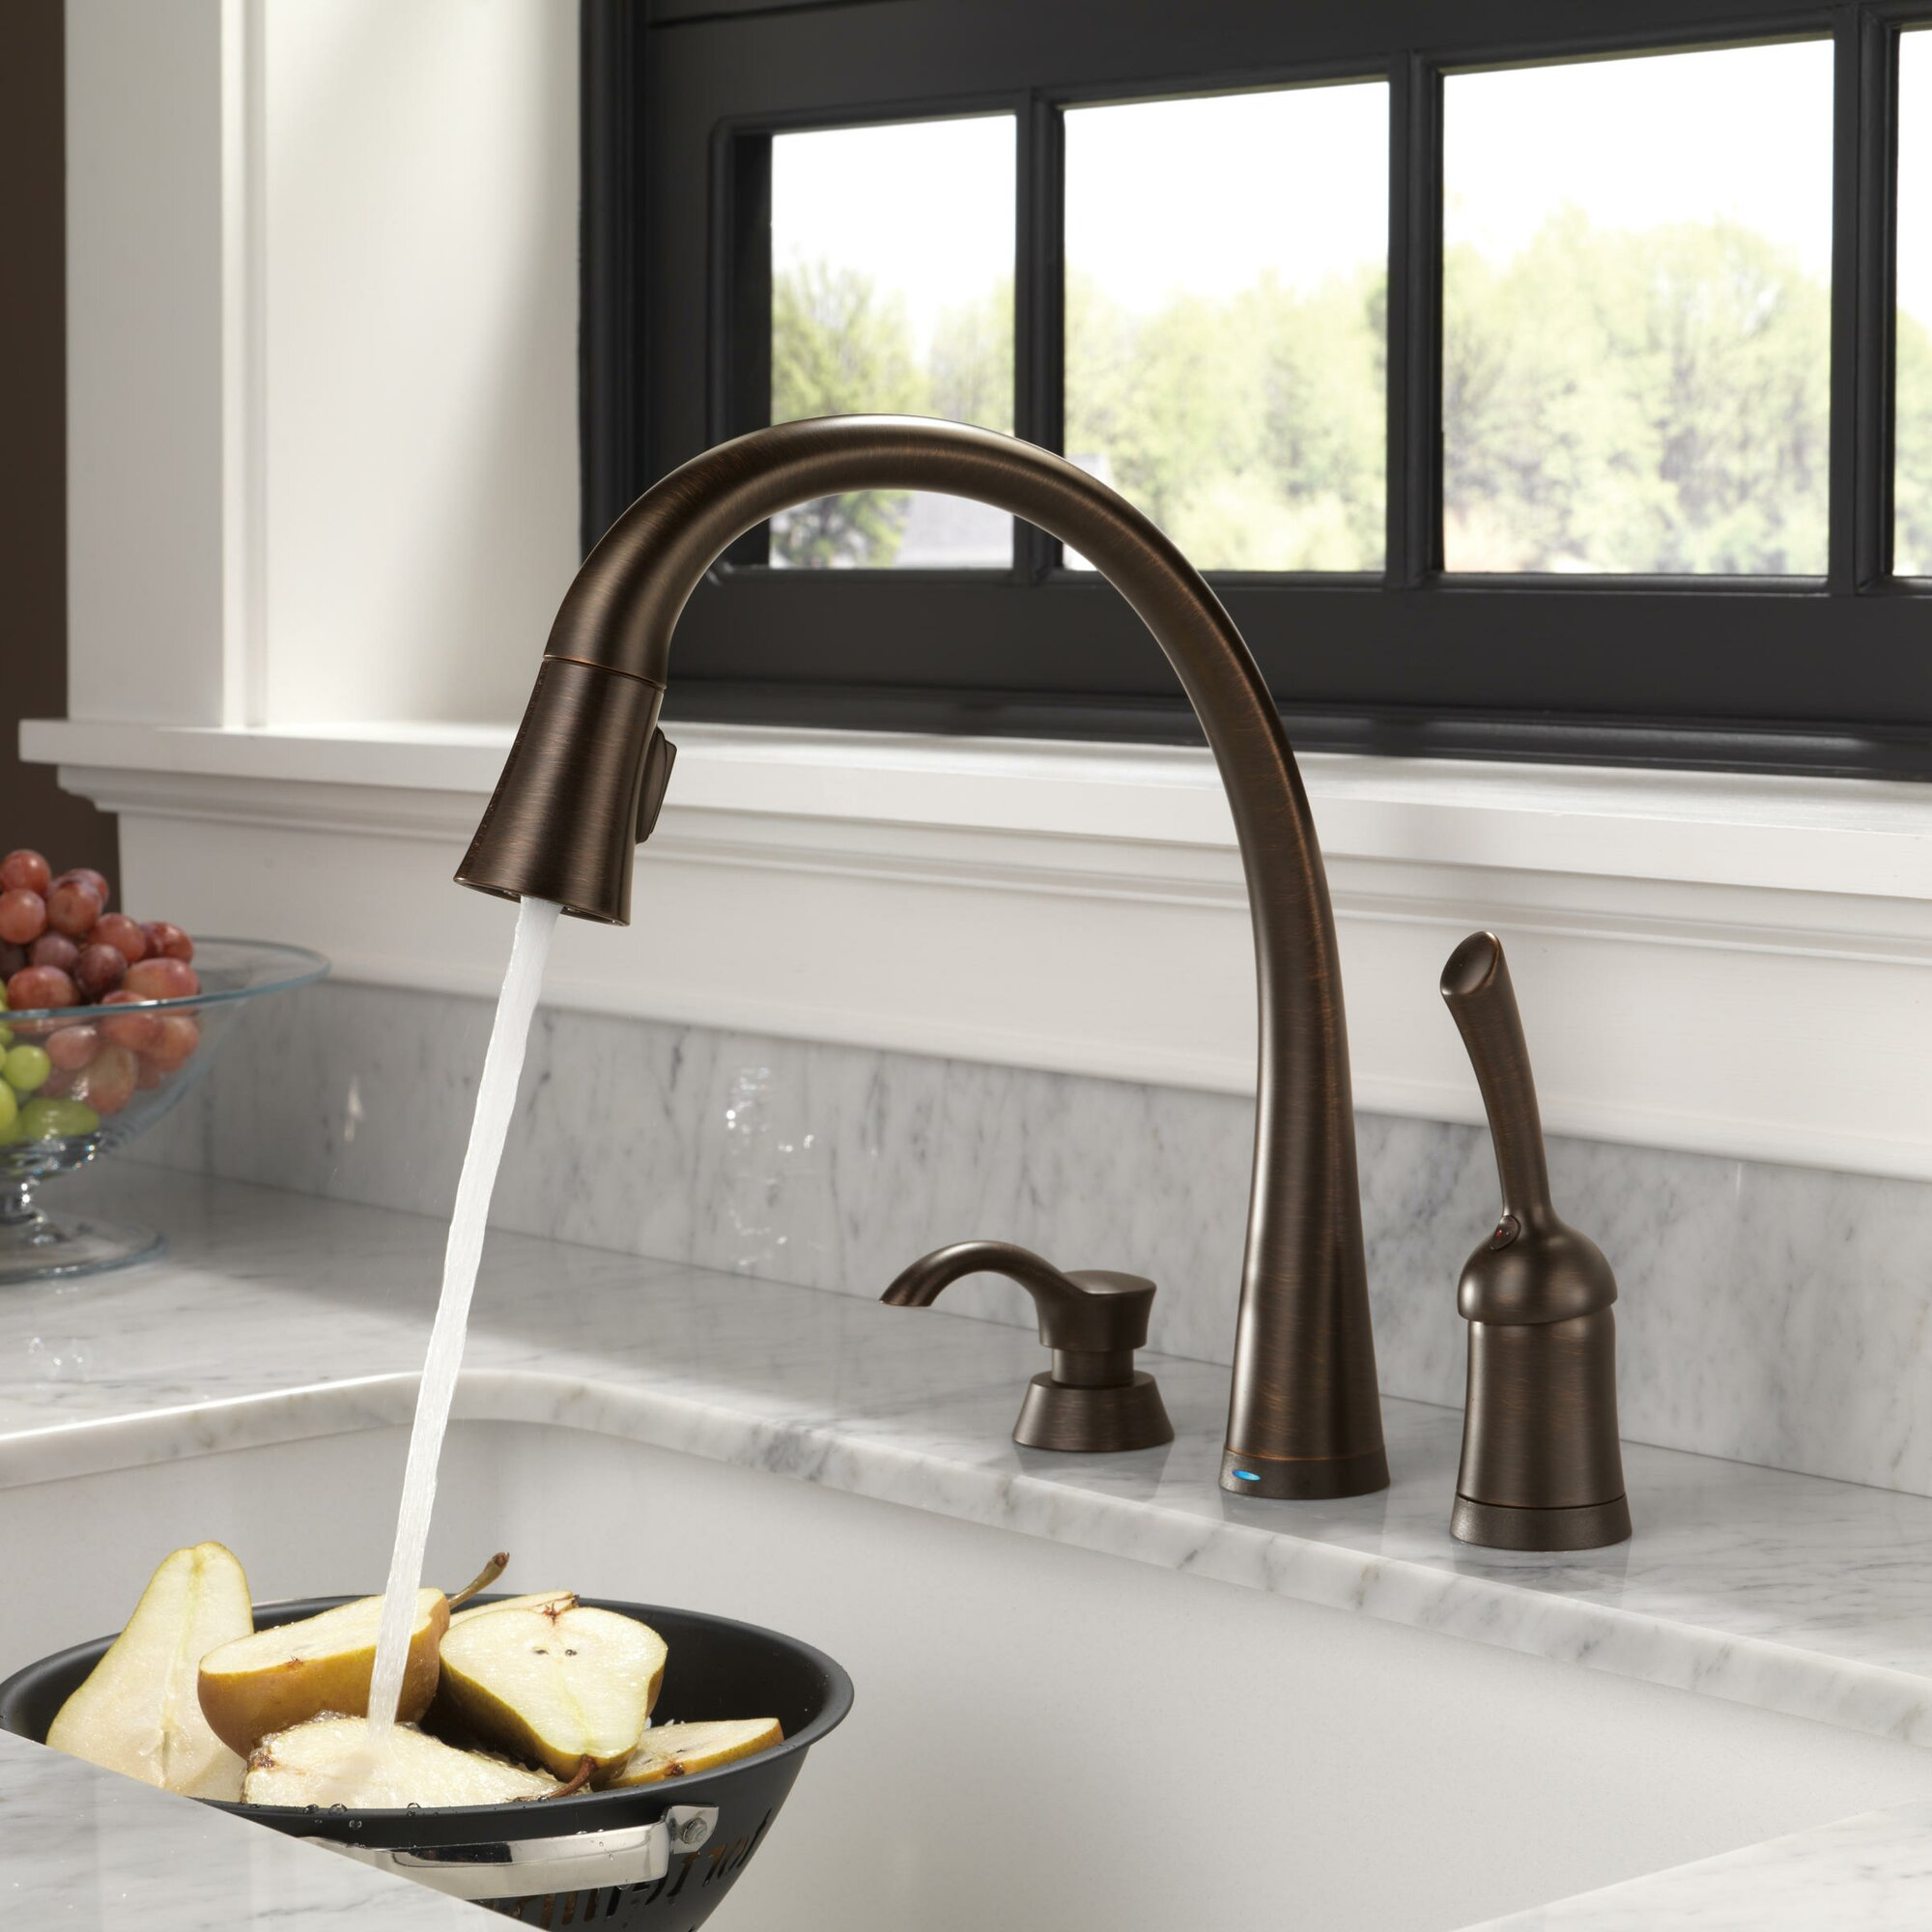 kitchen faucets with touch technology ierie com delta 9178t ar dst leland touch technology kitchen faucet